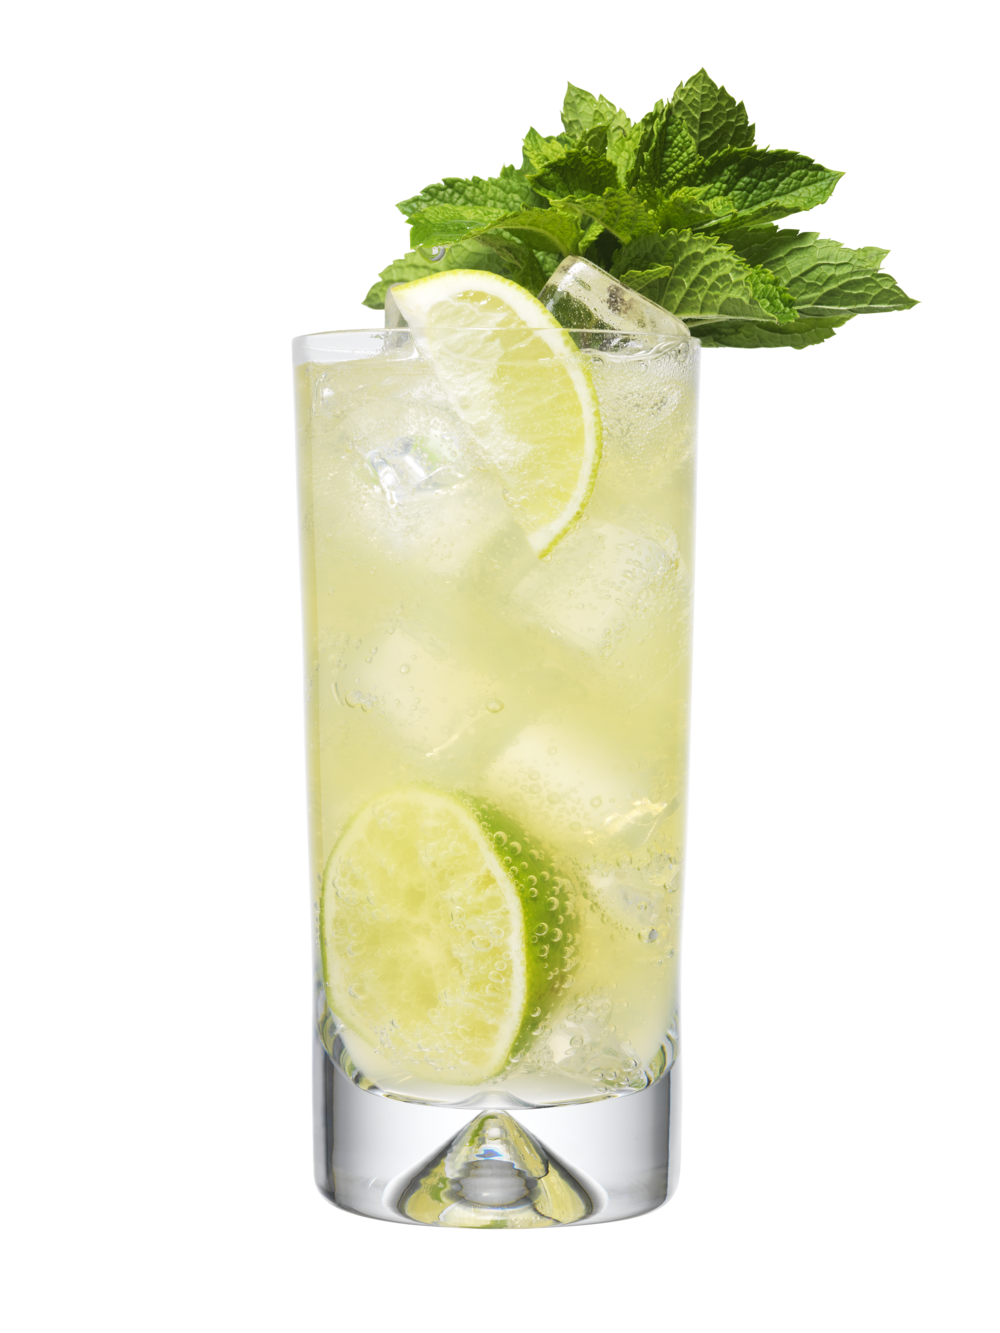 019 Spit Roasted Pineapple Gin copy.png